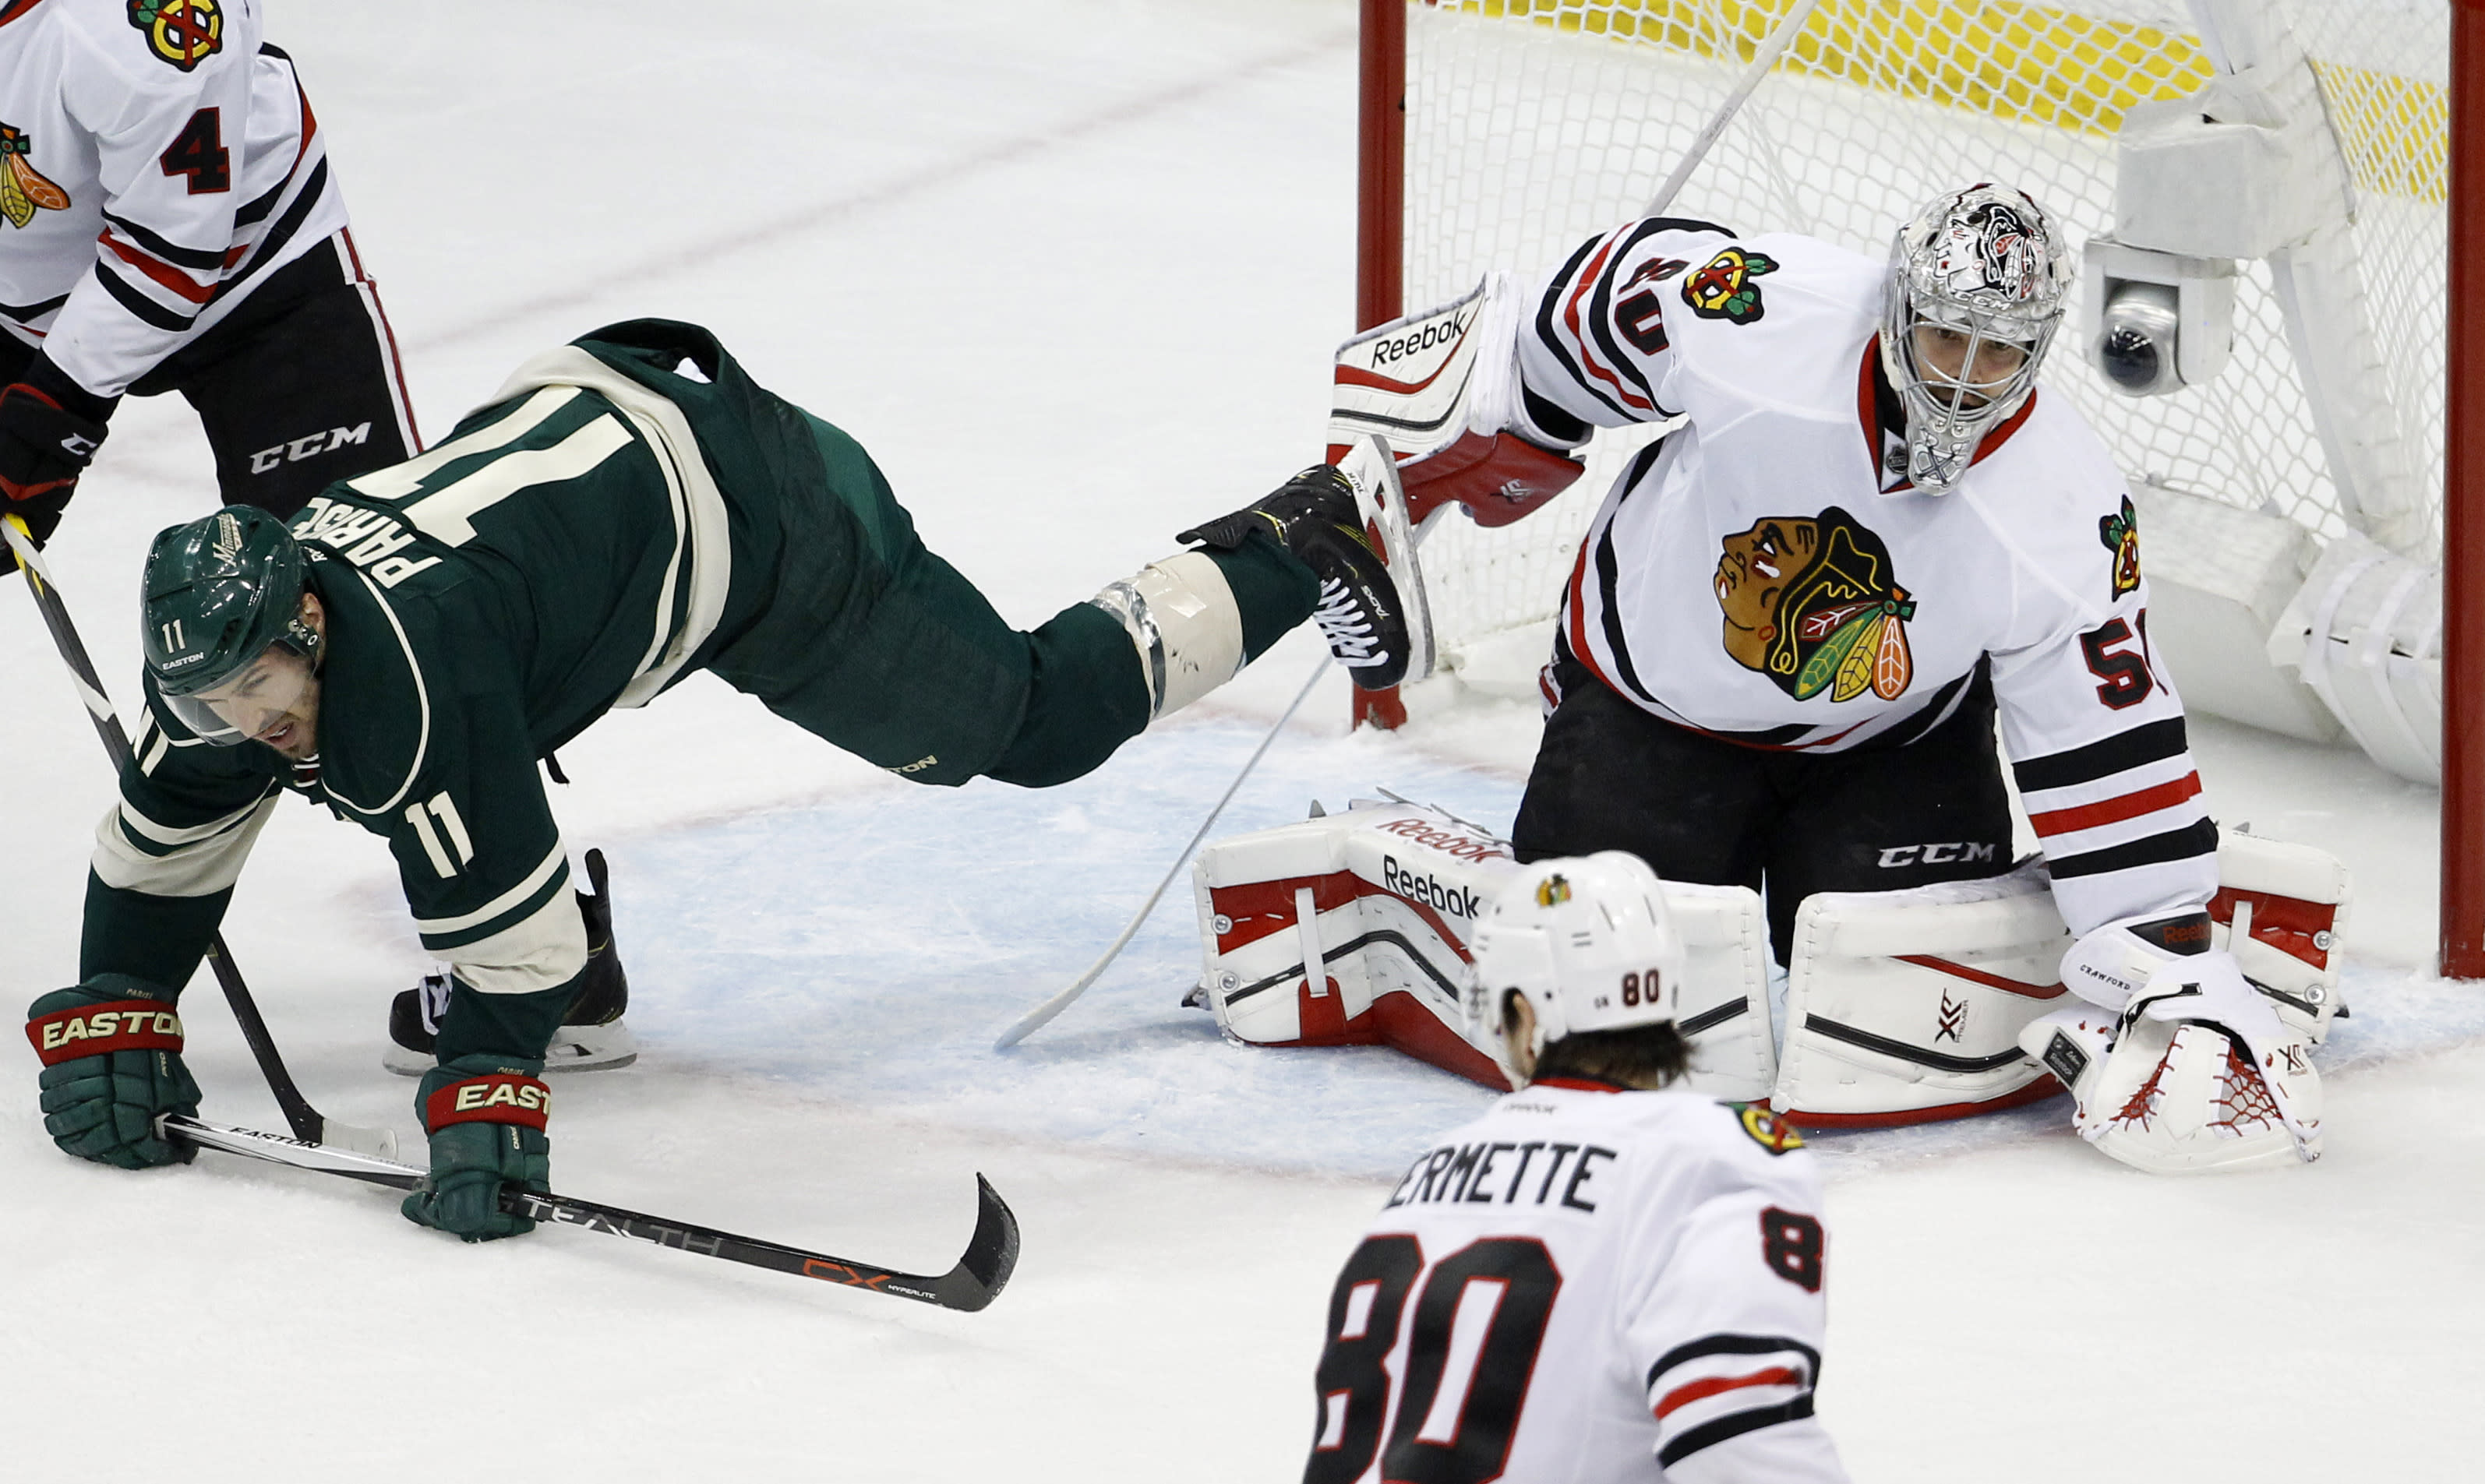 Crawford back in winning form as Blackhawks blank Wild in Game 3: 'He's a star against us'